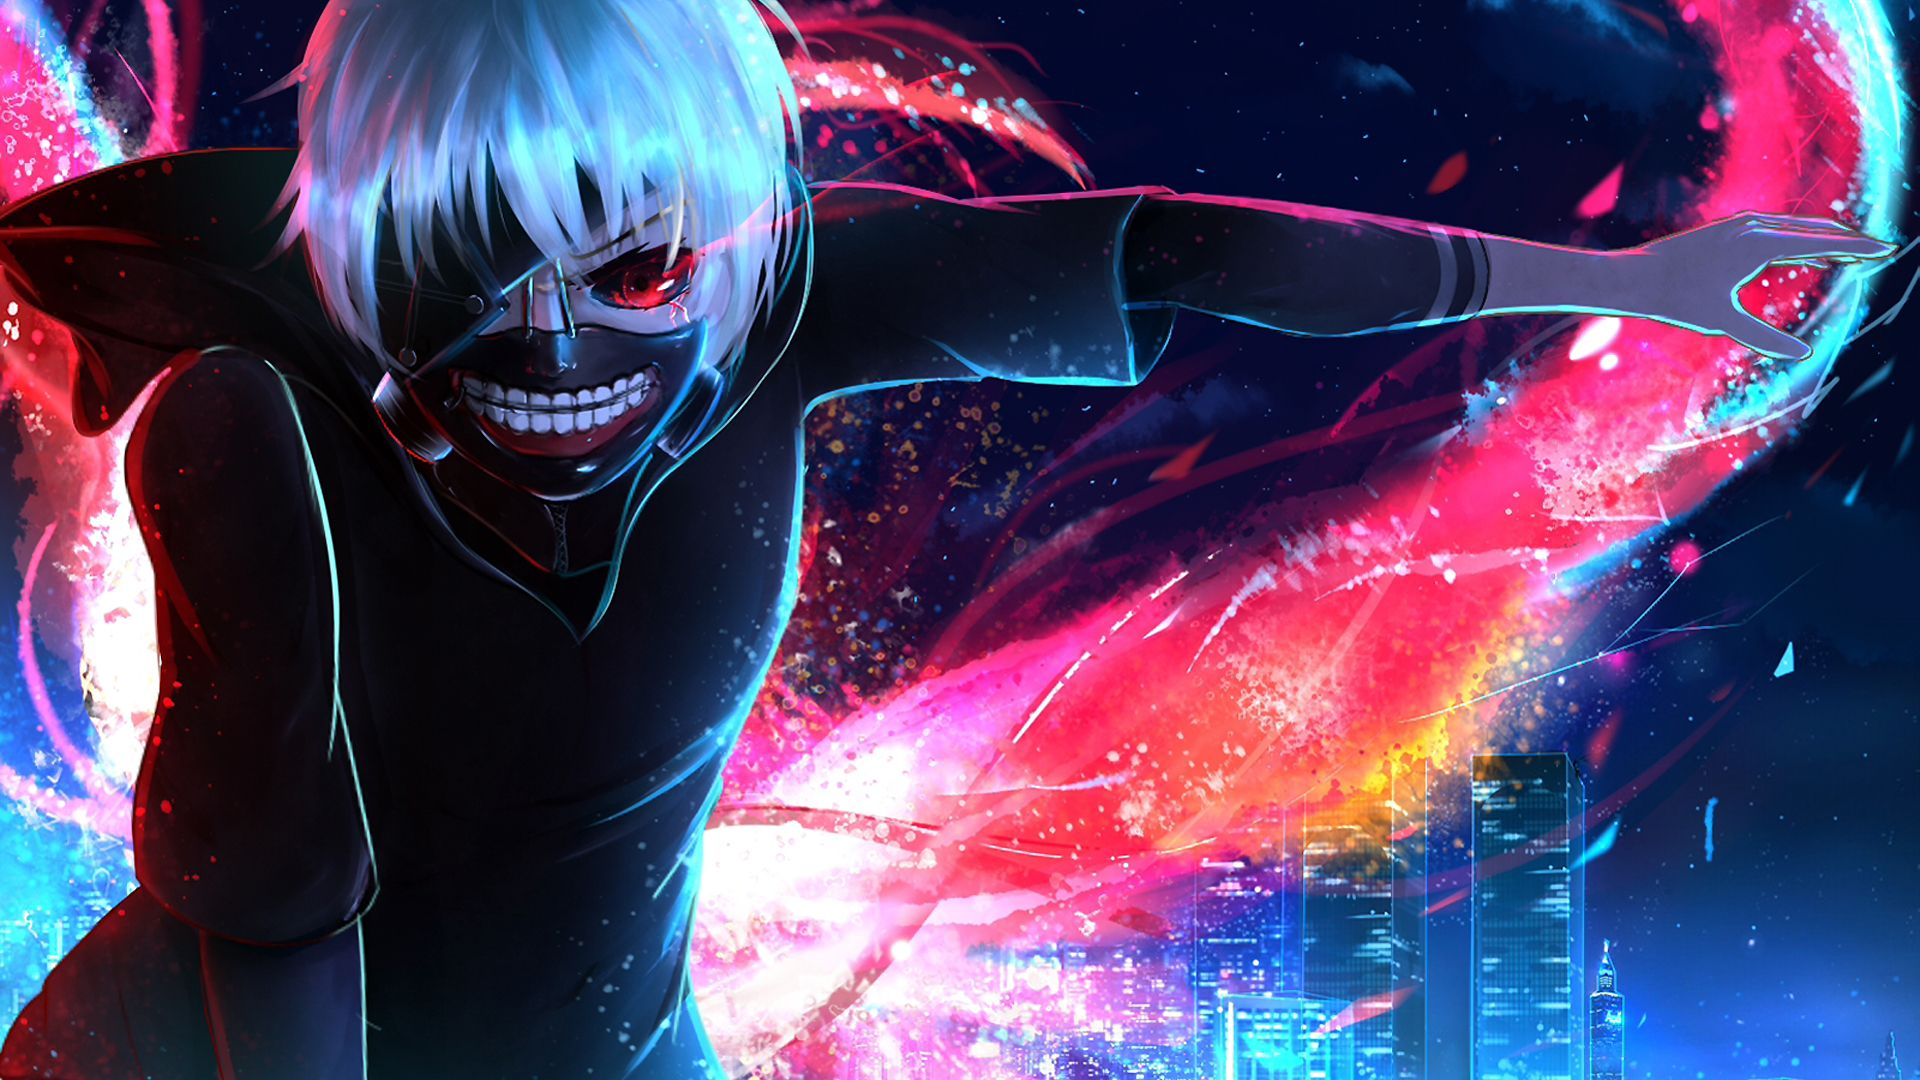 49 Tokyo Ghoul Wallpapers Tokyo Ghoul Backgrounds Tokyo Ghoul Wallpapers Tokyo Ghoul Anime Tokyo Ghoul